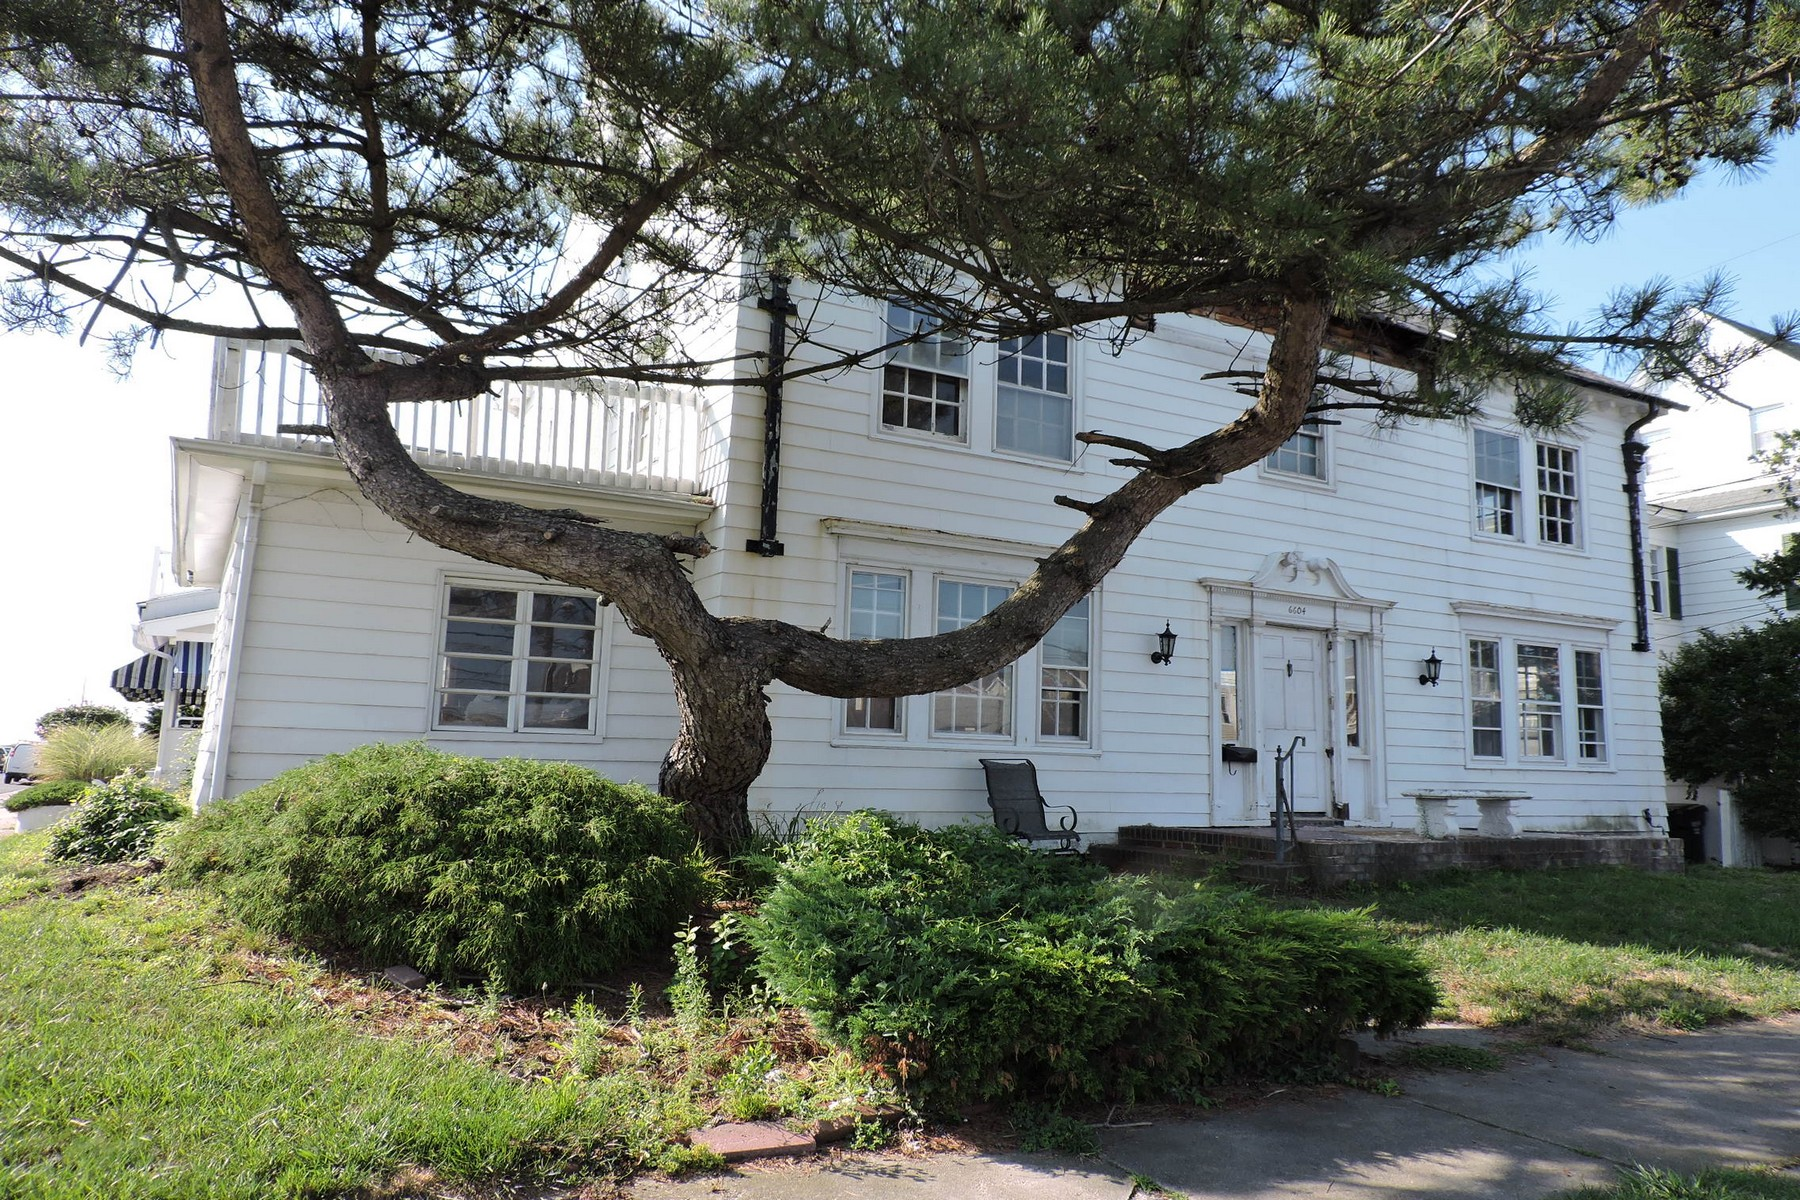 Single Family Home for Sale at 6604 Atlantic Ave BEACHBLOCK Ventnor, New Jersey, 08406 United States